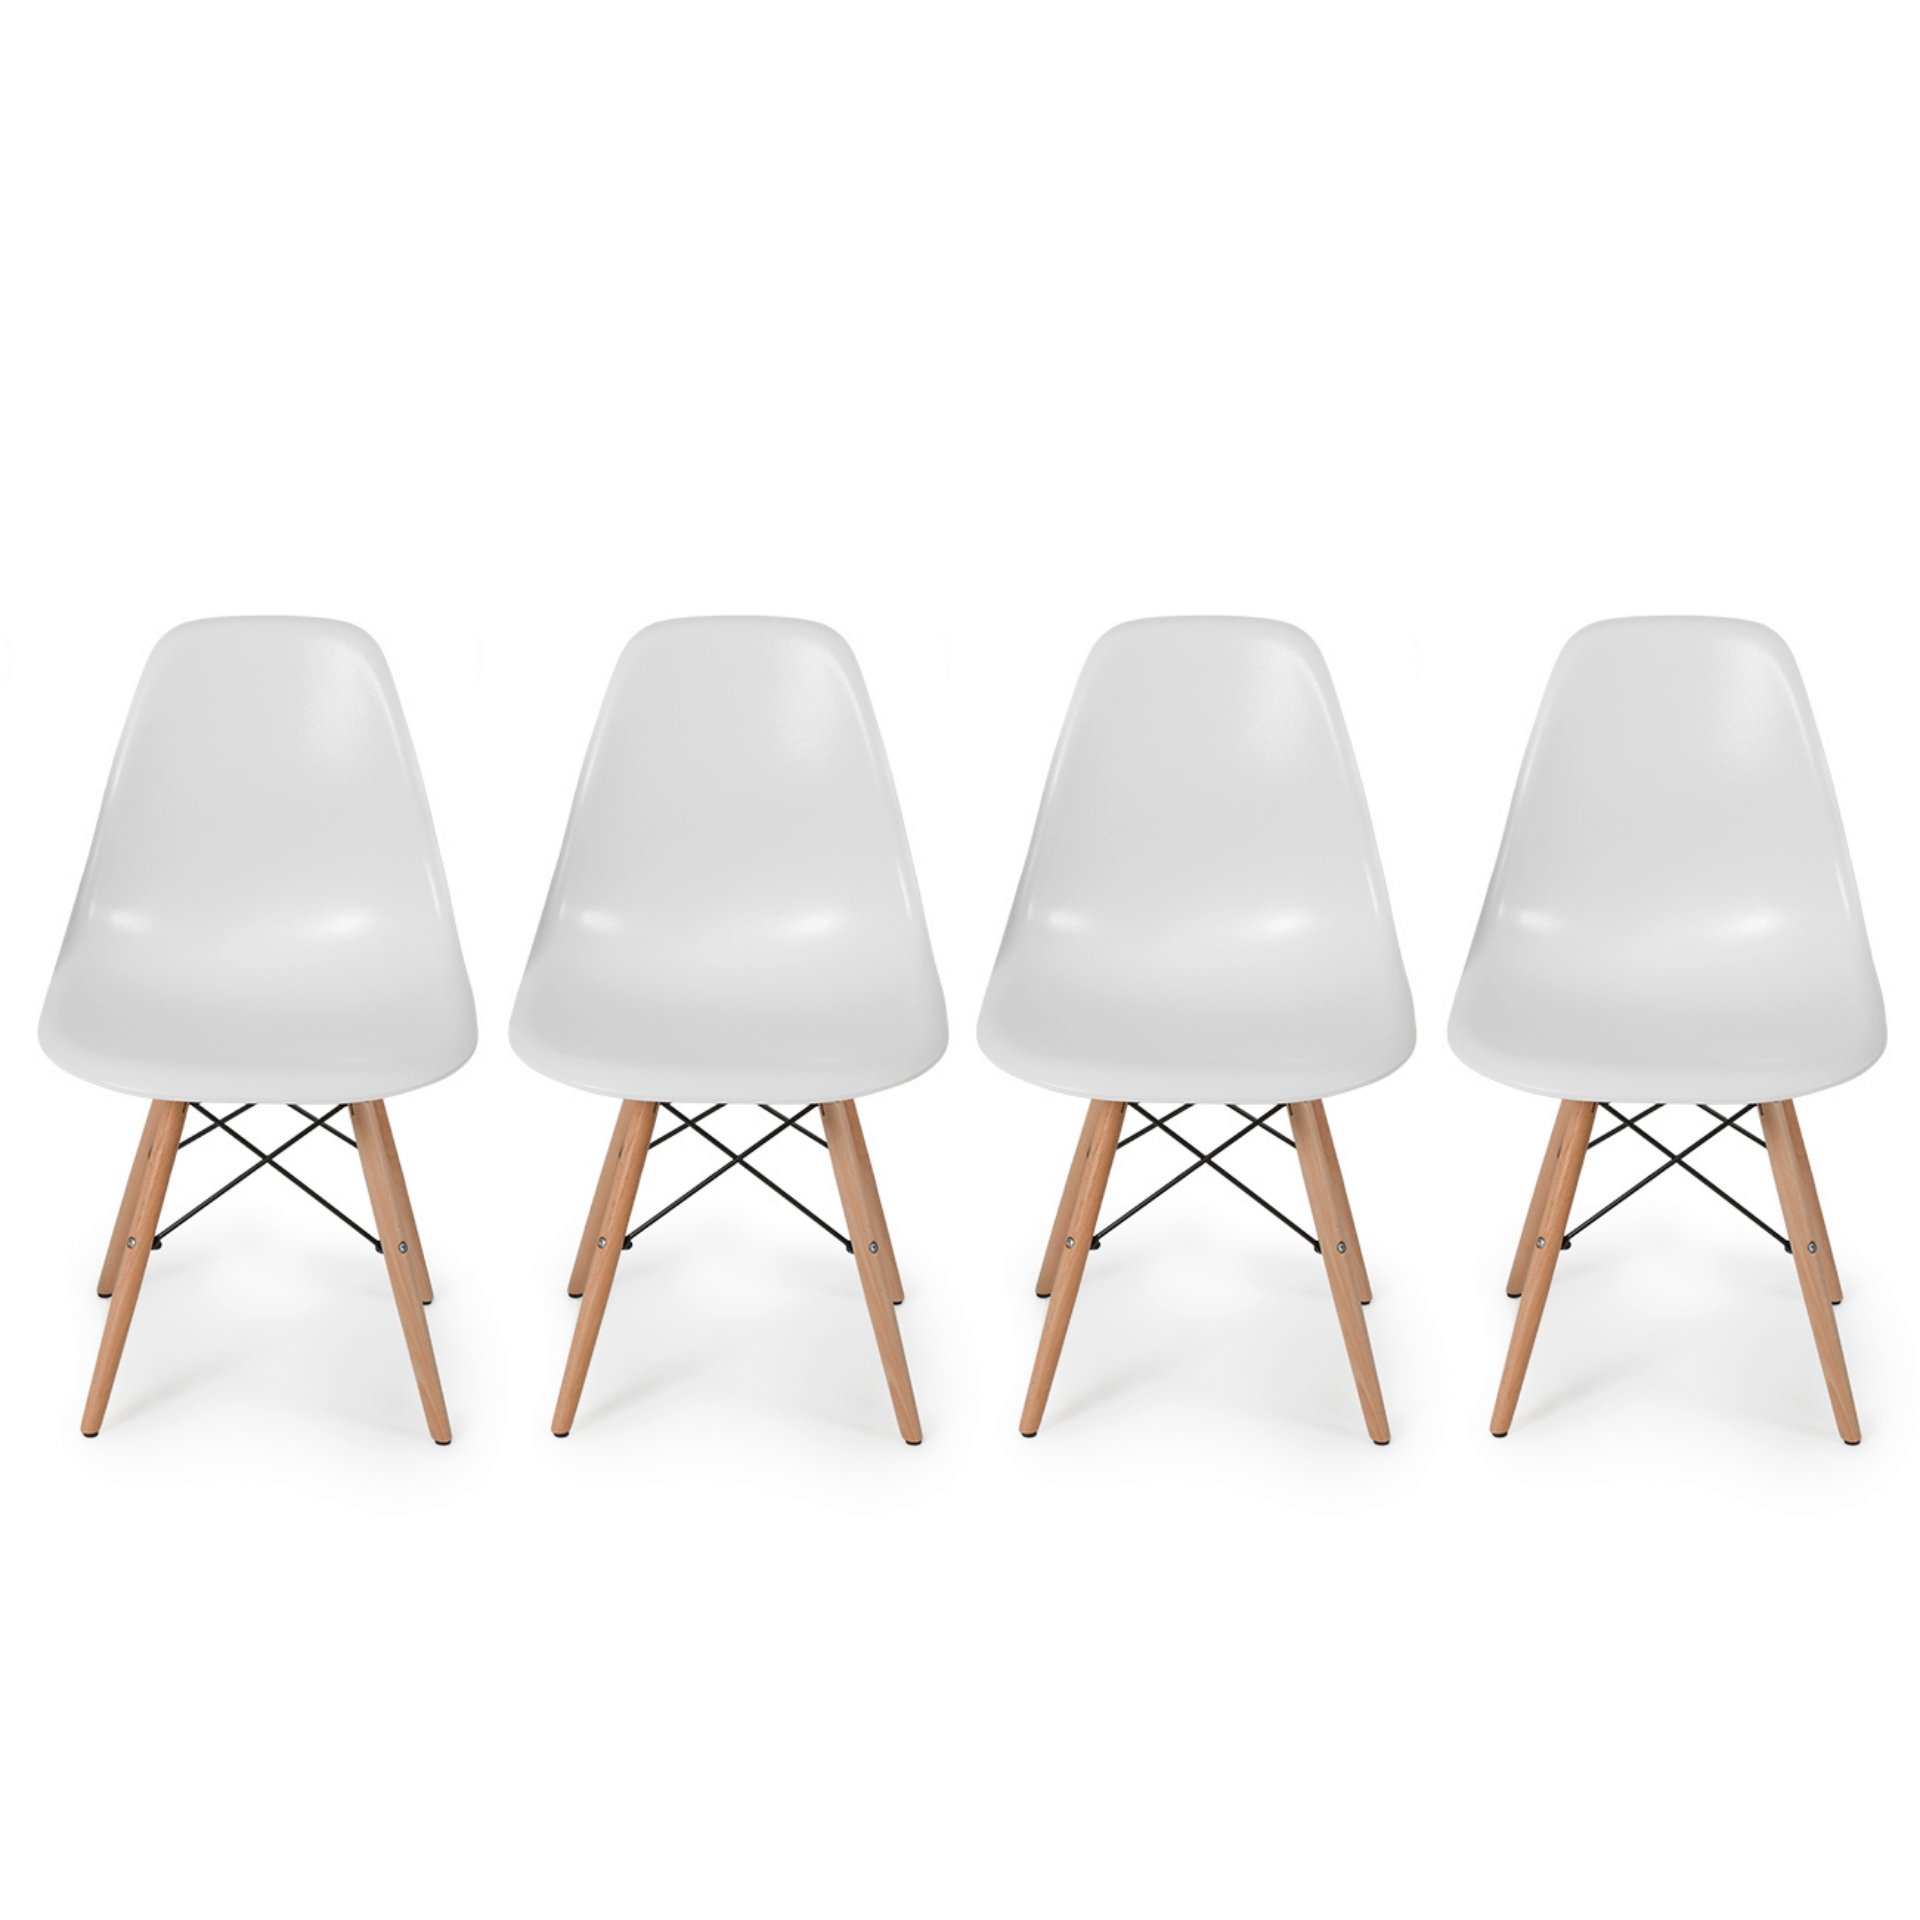 Set of 4 Retro Style Wood Base Mid Century Modern Shell Dining wooden Chair Dowel legs White #565